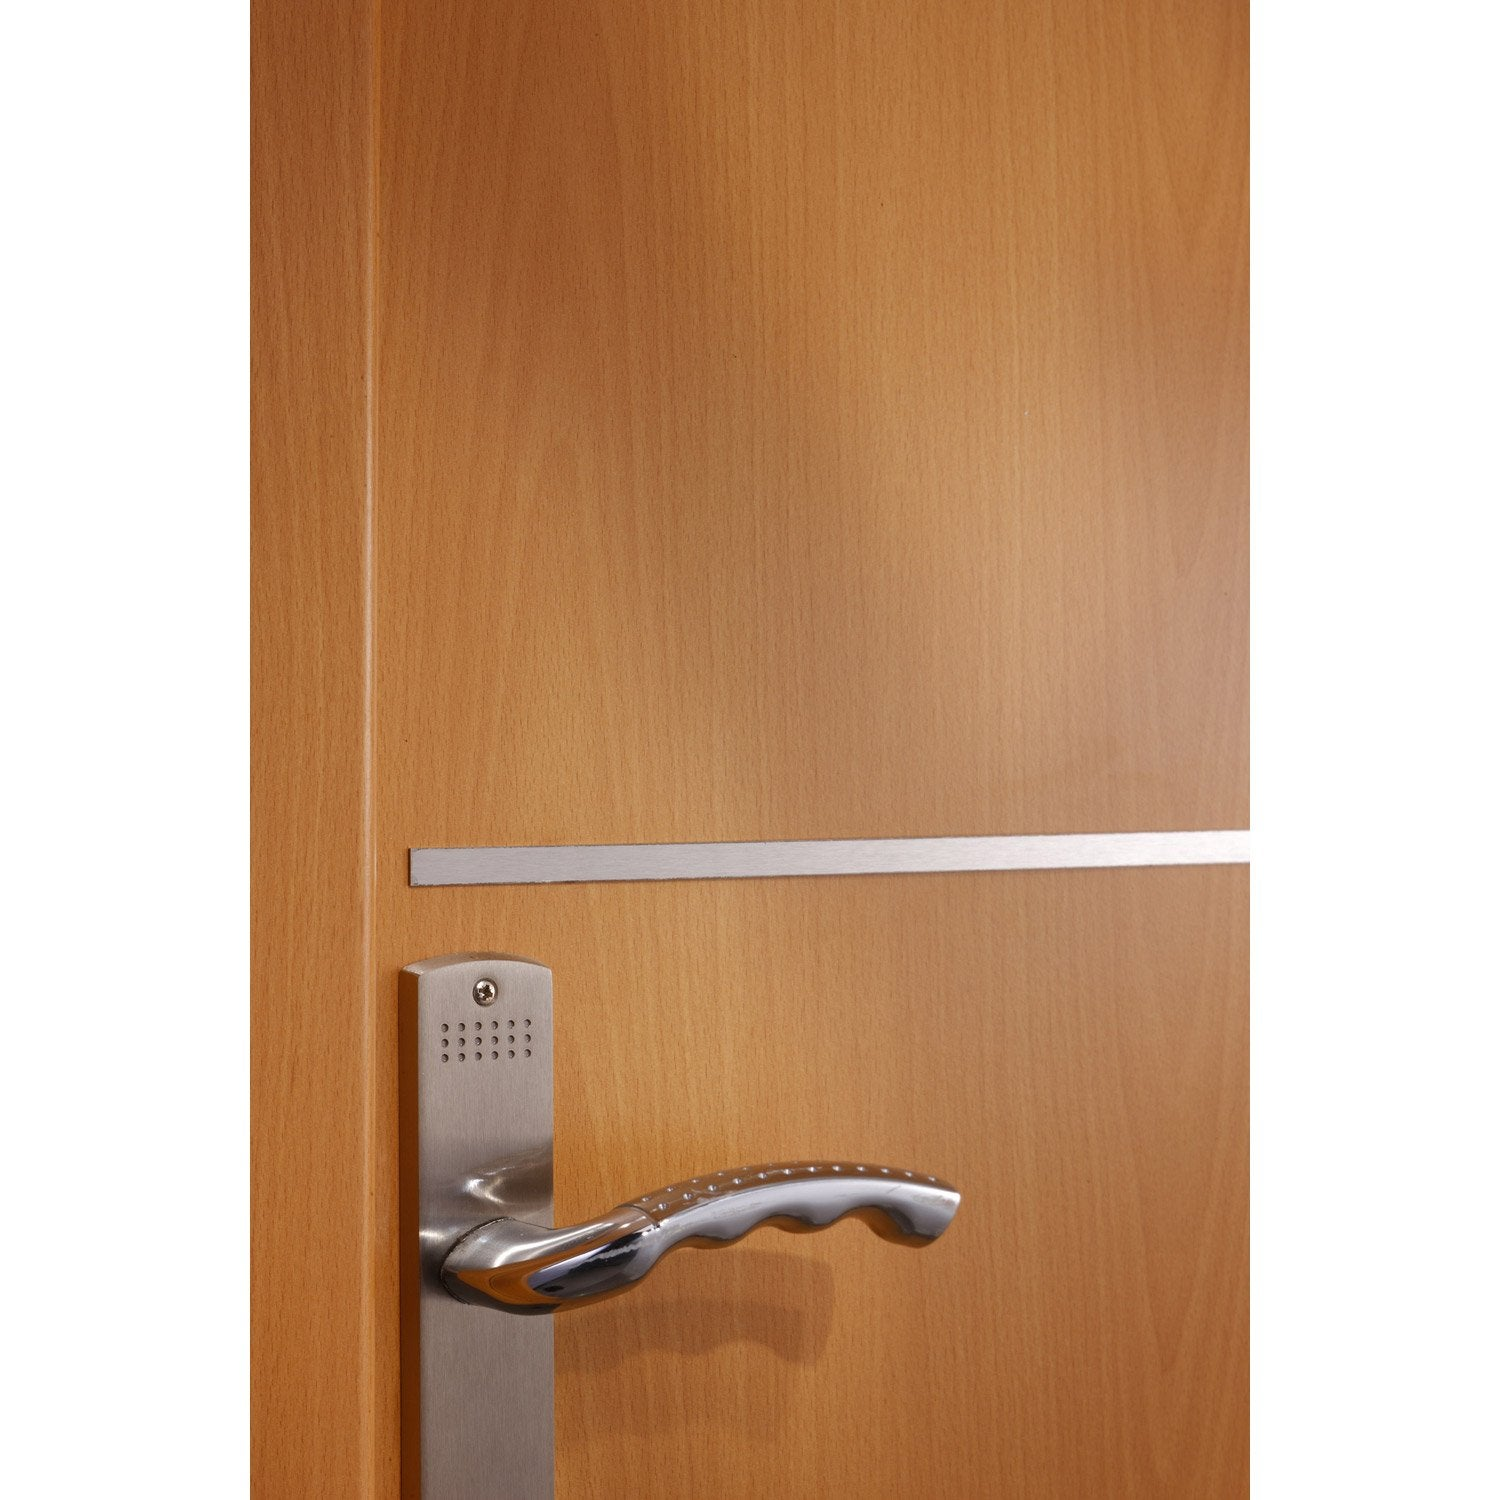 Lot de 4 listels recoupable pour porte de 83 cm inox leroy merlin - Porte renovation leroy merlin ...